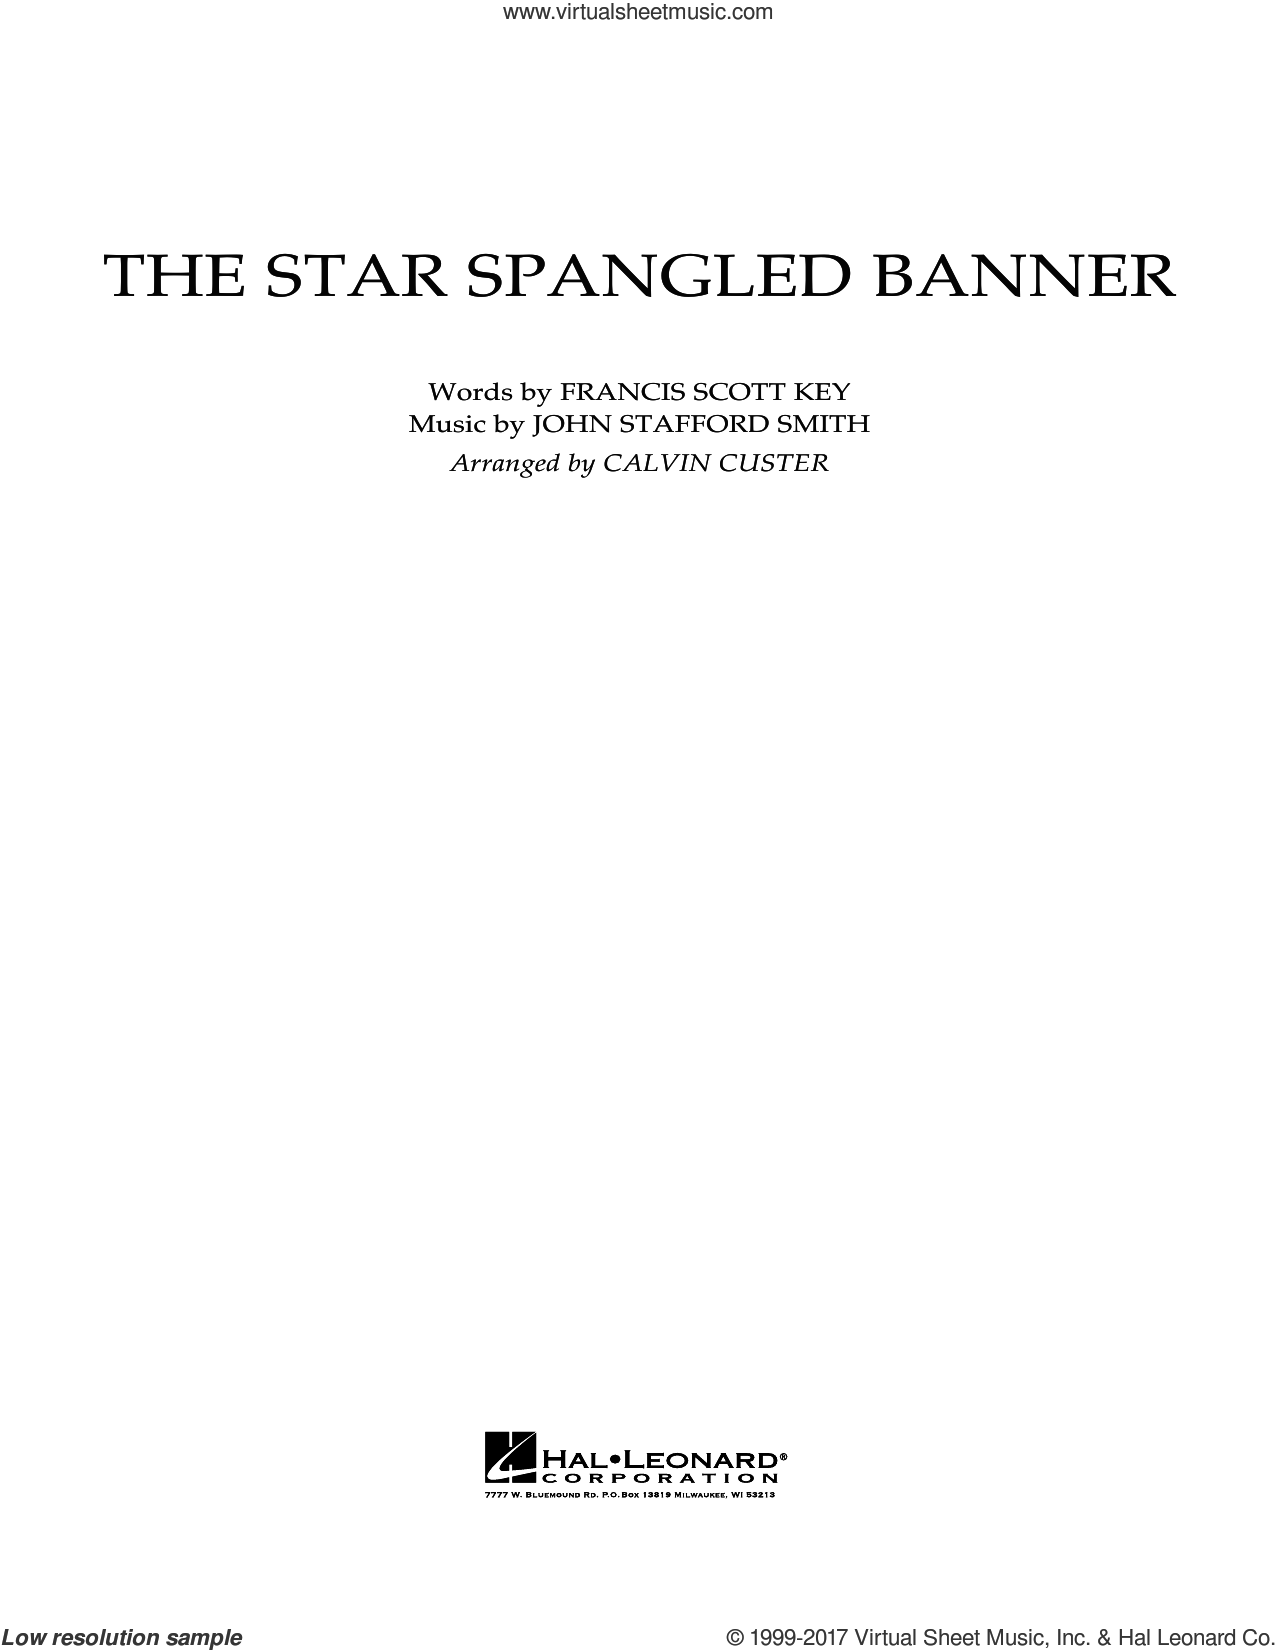 The Star Spangled Banner (COMPLETE) sheet music for full orchestra by Calvin Custer, Francis Scott Key and John Stafford Smith, intermediate skill level